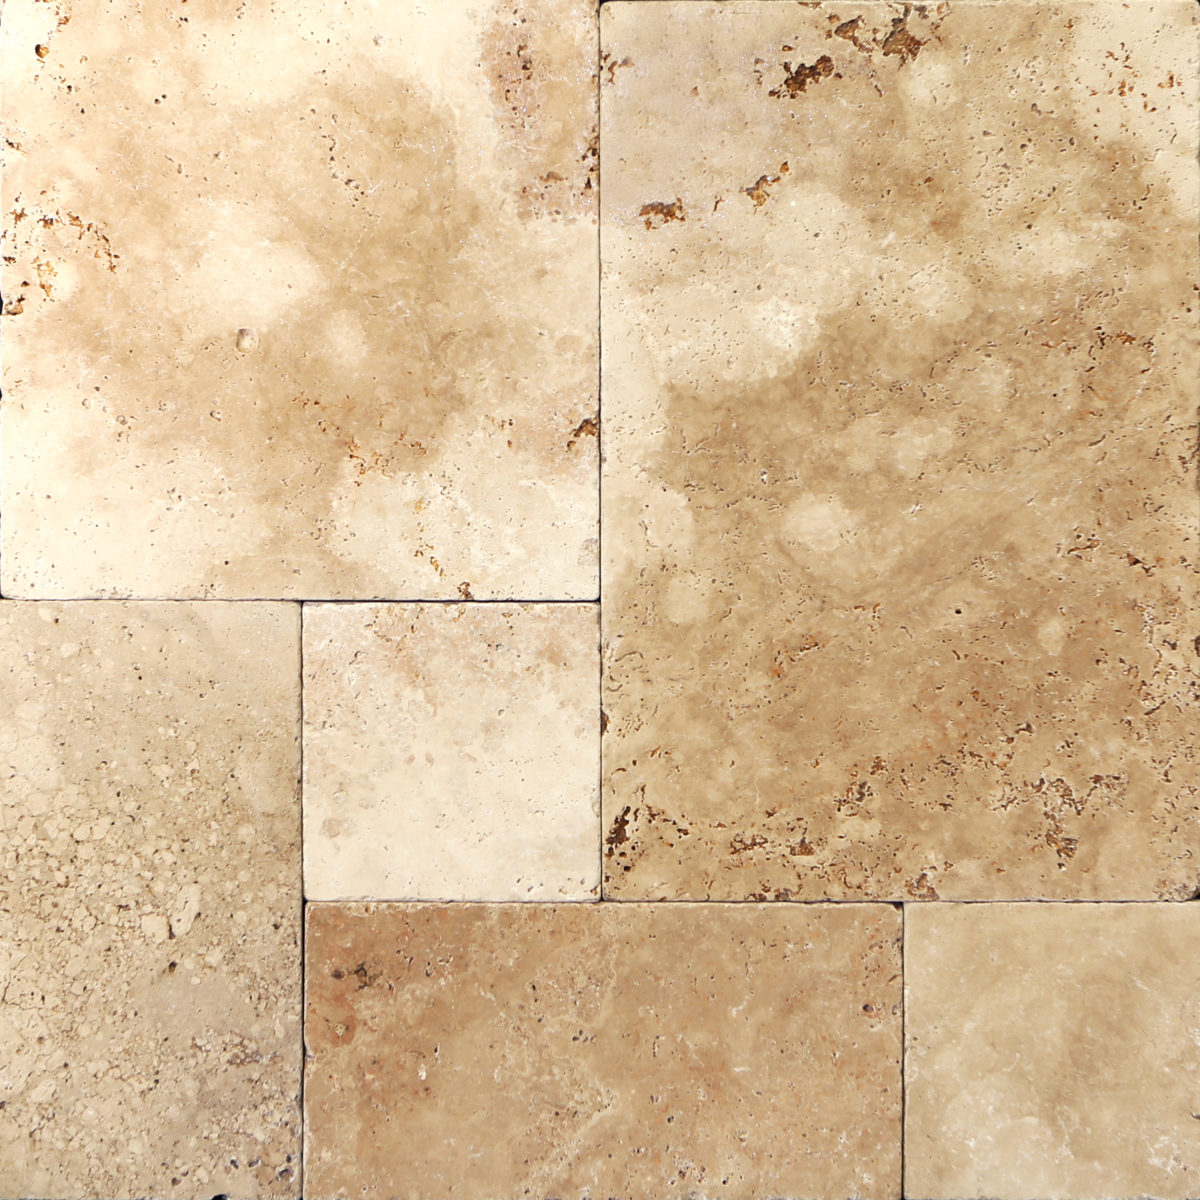 Brushed and chilesed travertine tiles travertine pavers marble mocha french pattern tumbled travertine paver dailygadgetfo Image collections